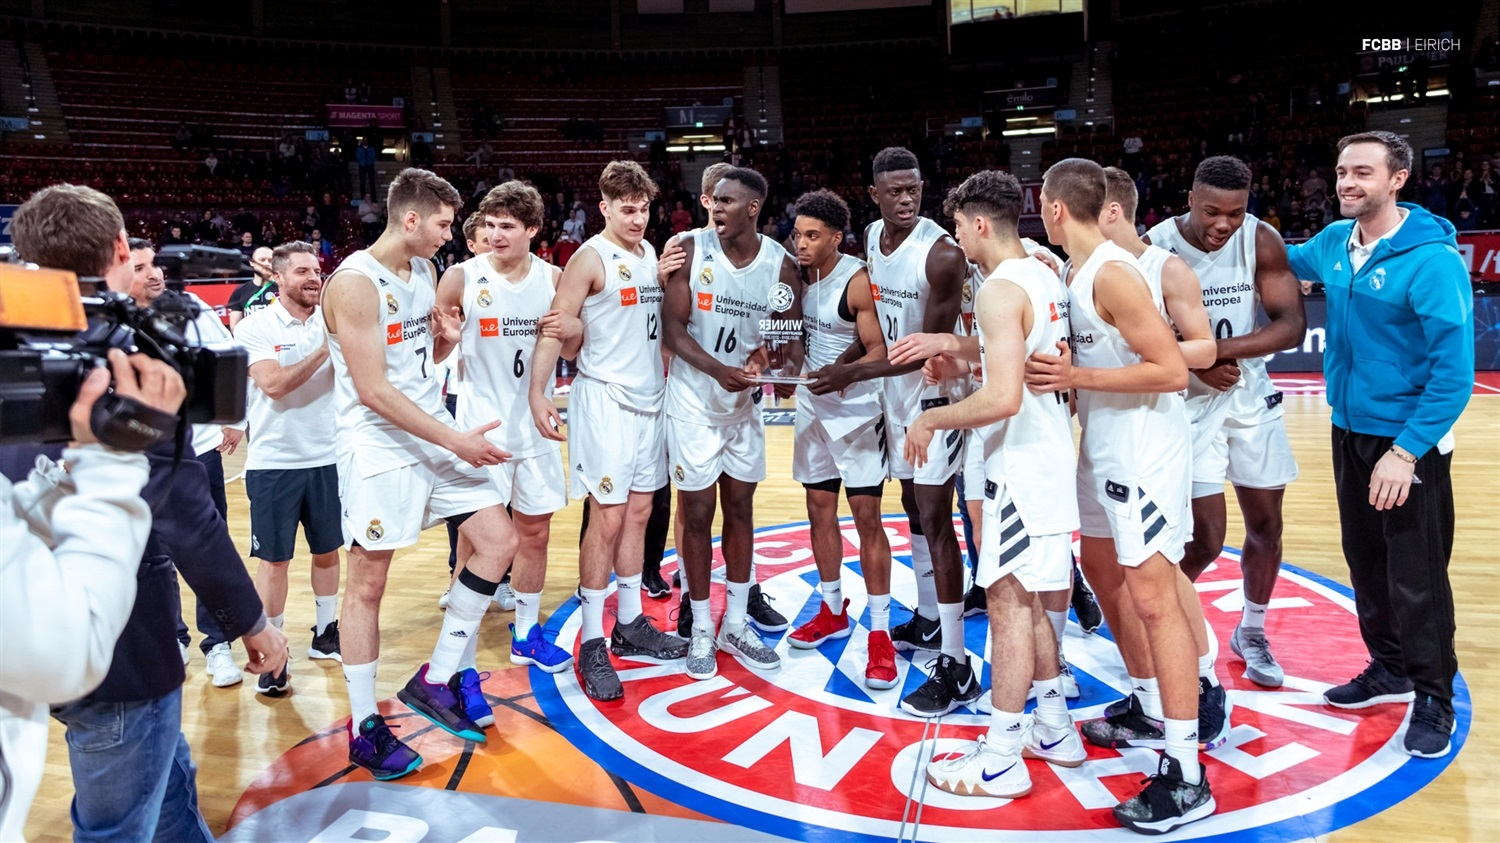 U18 Real Madrid Champ - ANGT Munich 2019 (photo FCBB - Eirich) JT18